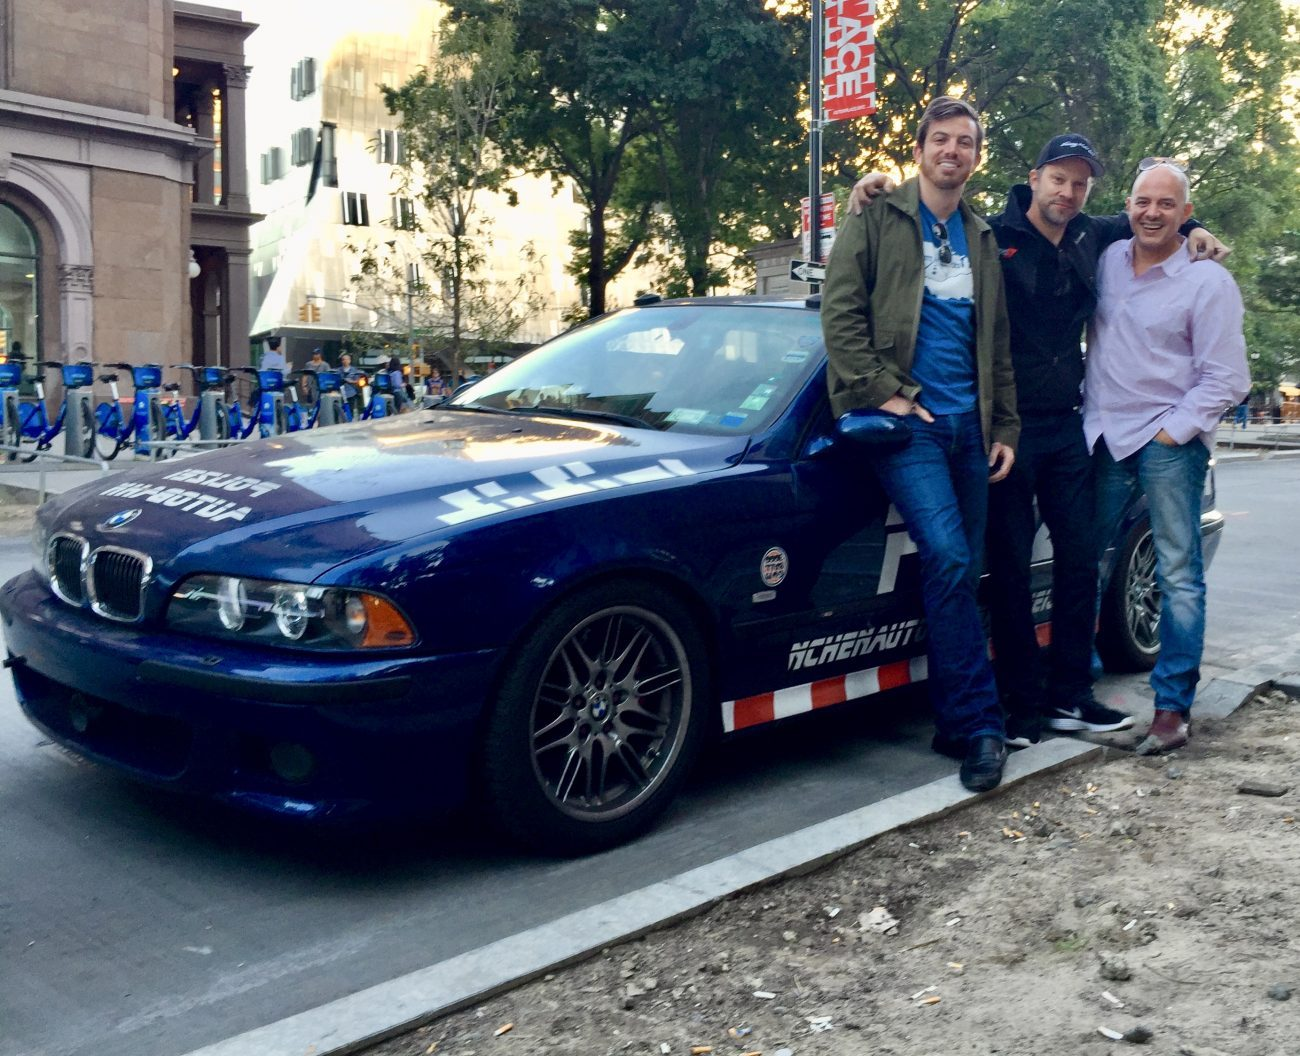 Ed Bolian and Alex Roy with the Polizei 144 BMW M5